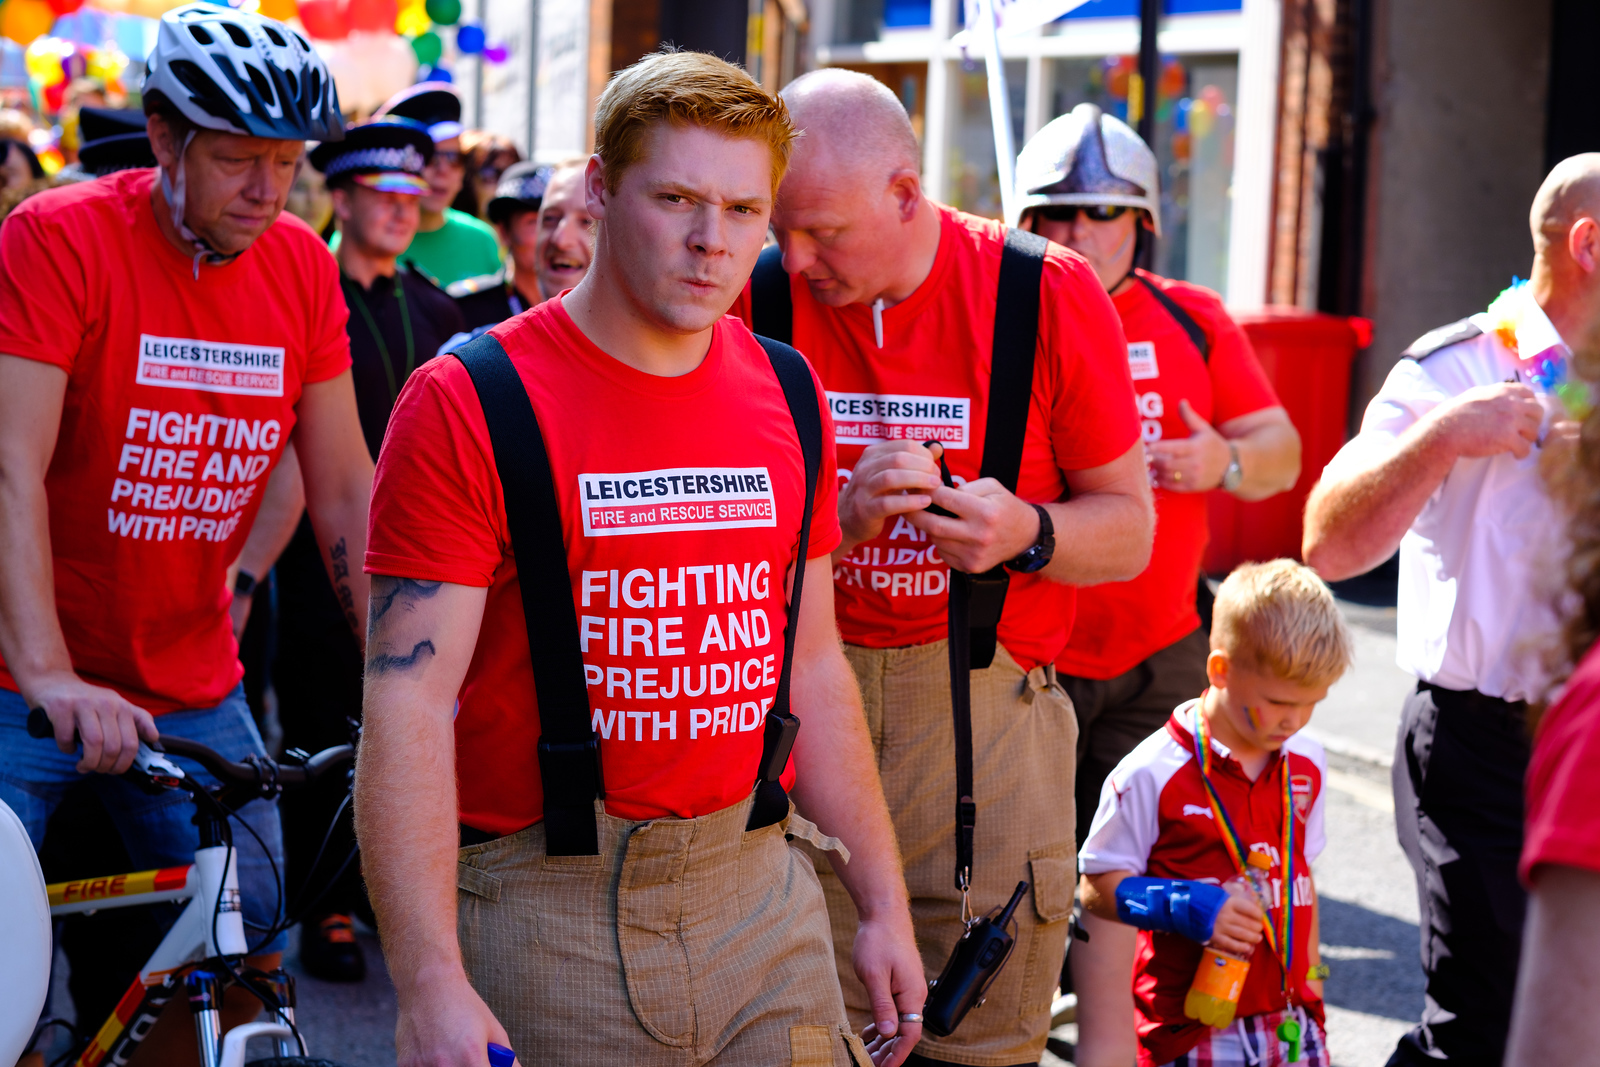 Fighting Fire and Prejudice with Pride